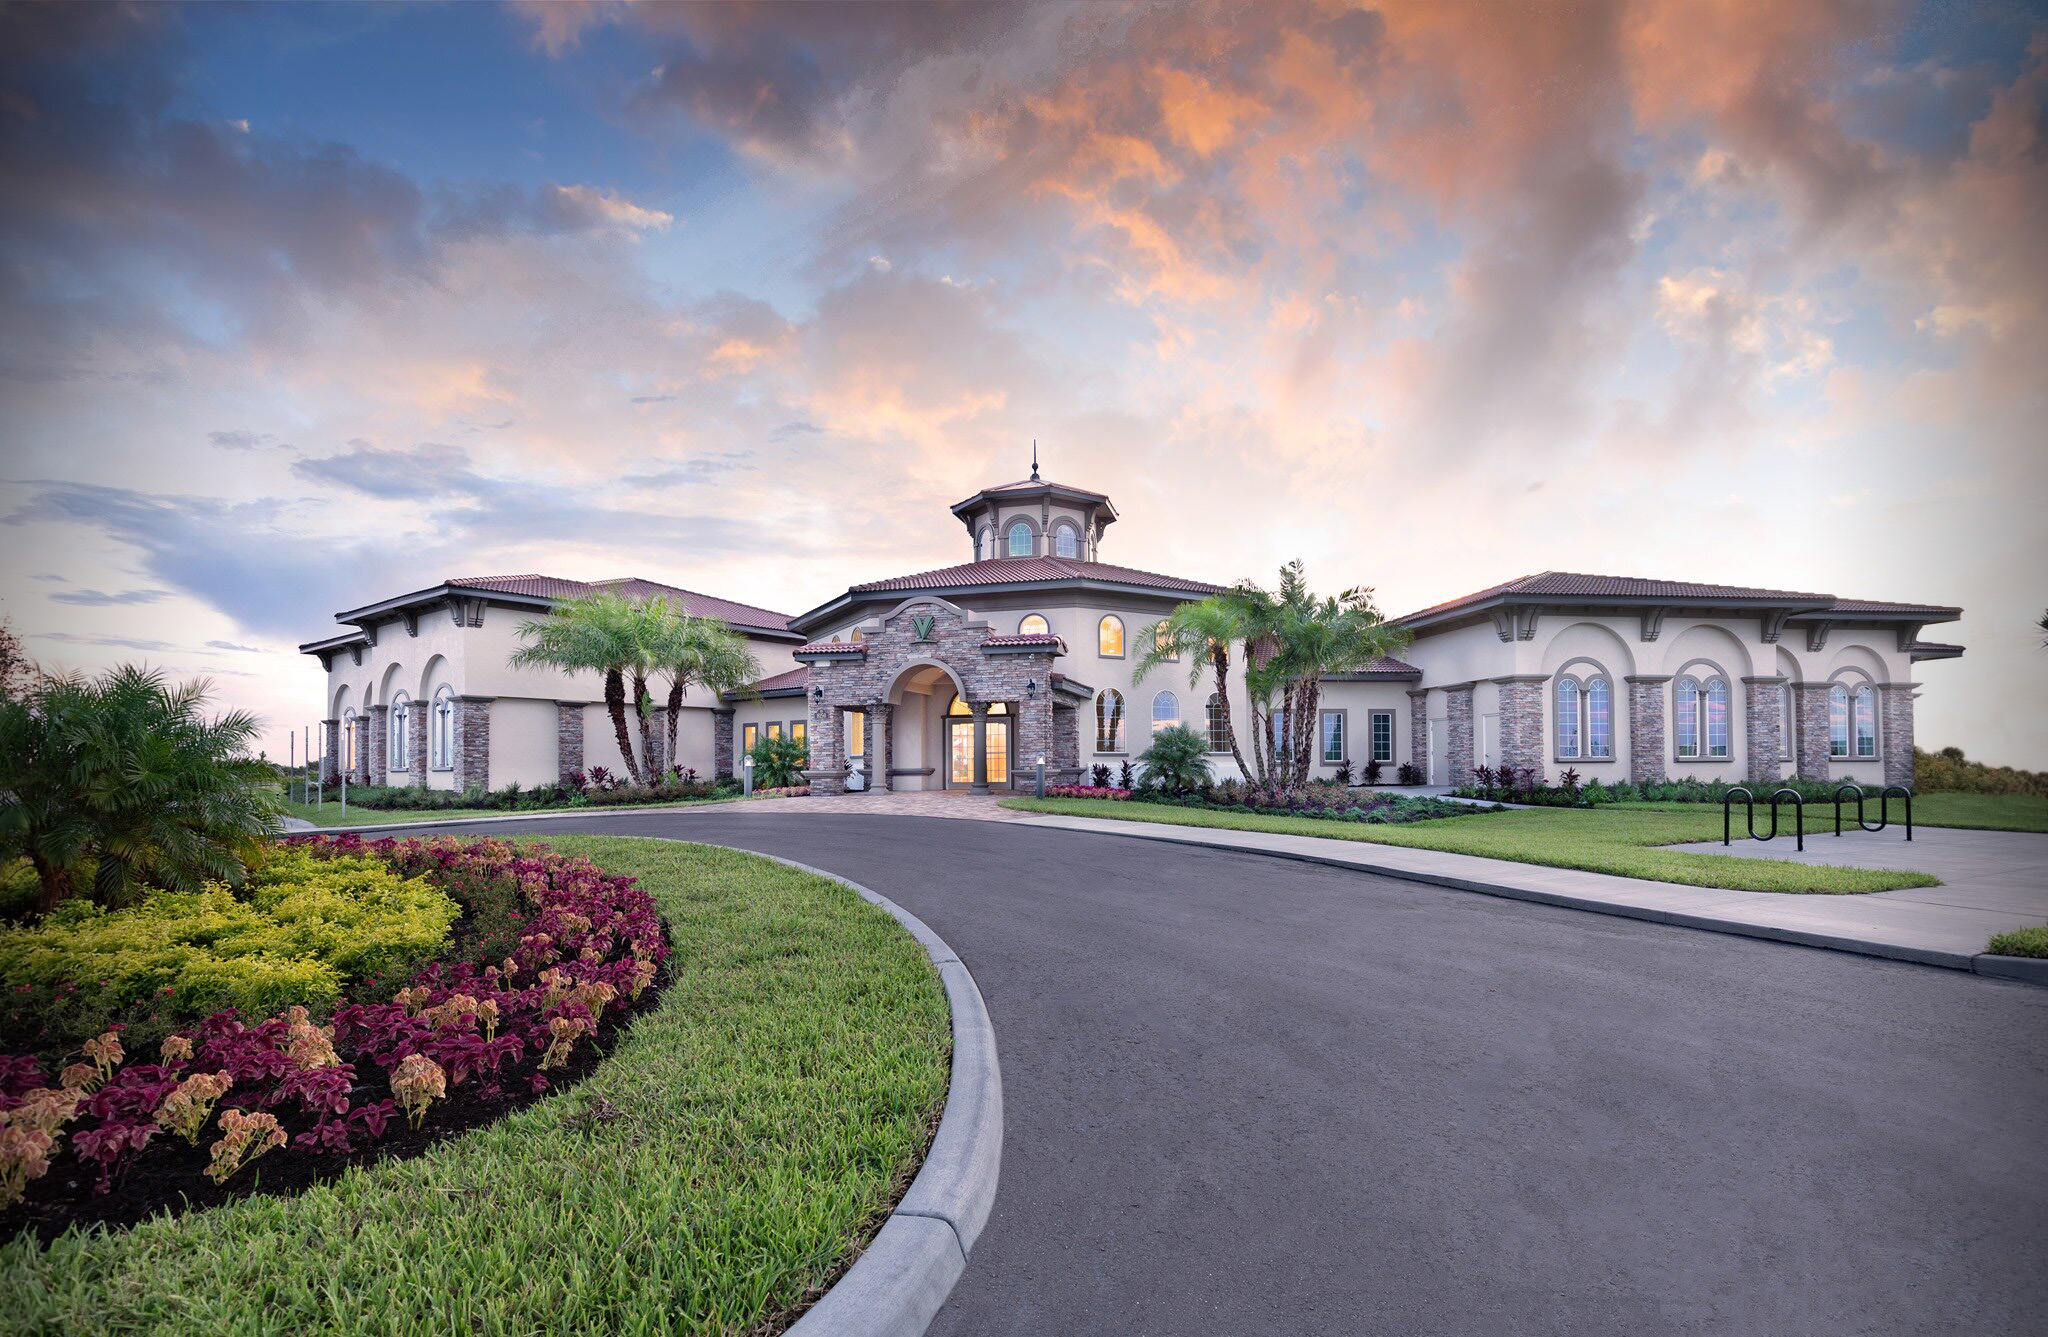 Exterior of Addison Village Clubhouse front at sunset.